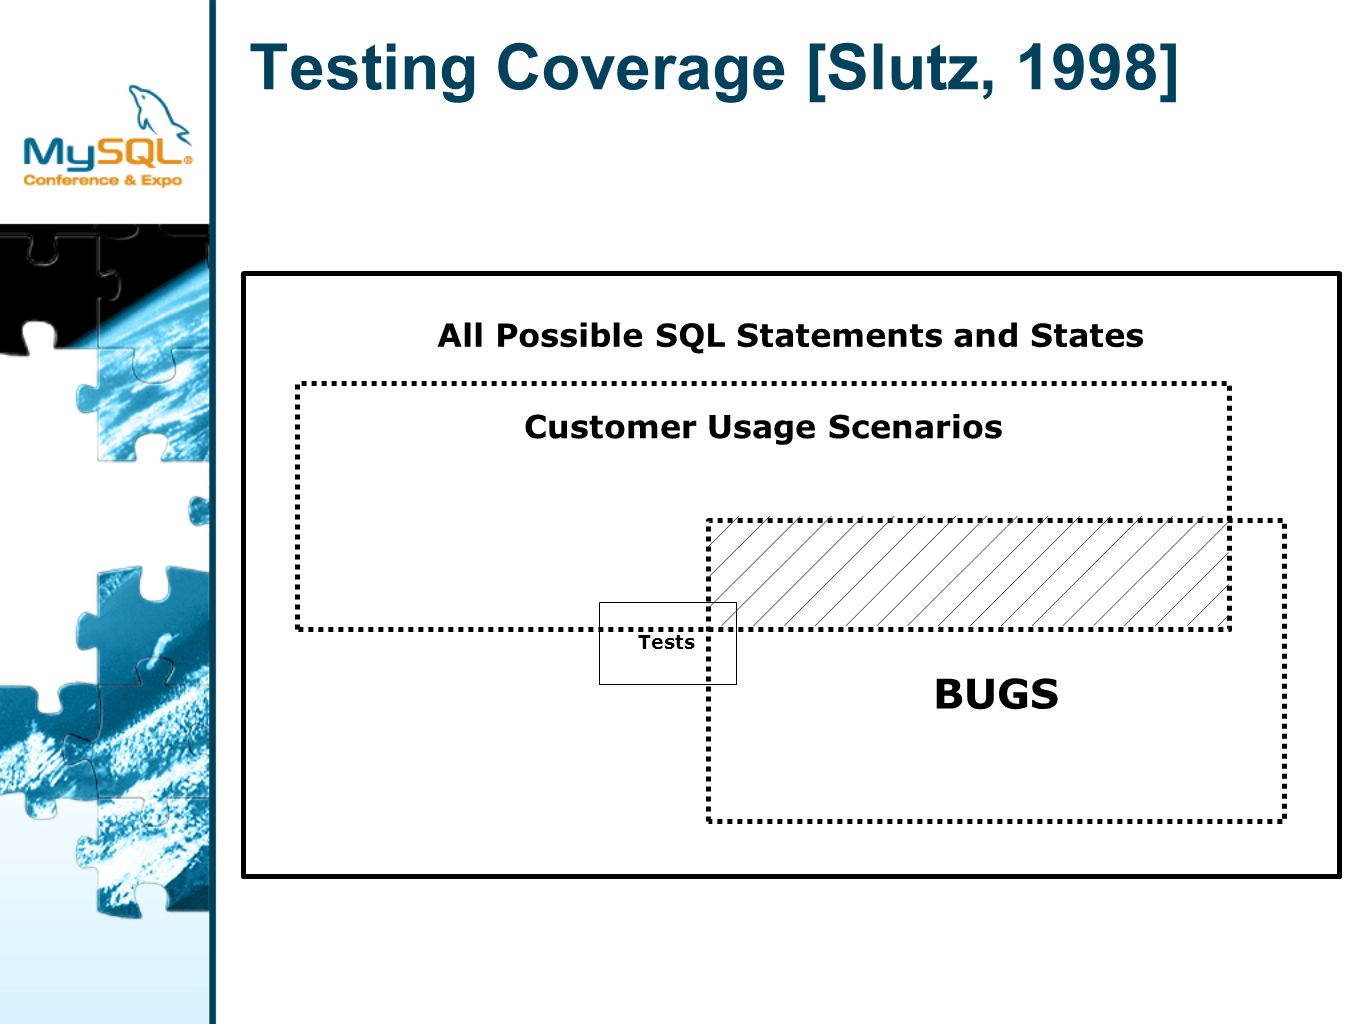 Testing Coverage [Slutz, 1998] All Possible SQL Statements and States Customer Usage Scenarios BUGS Tests